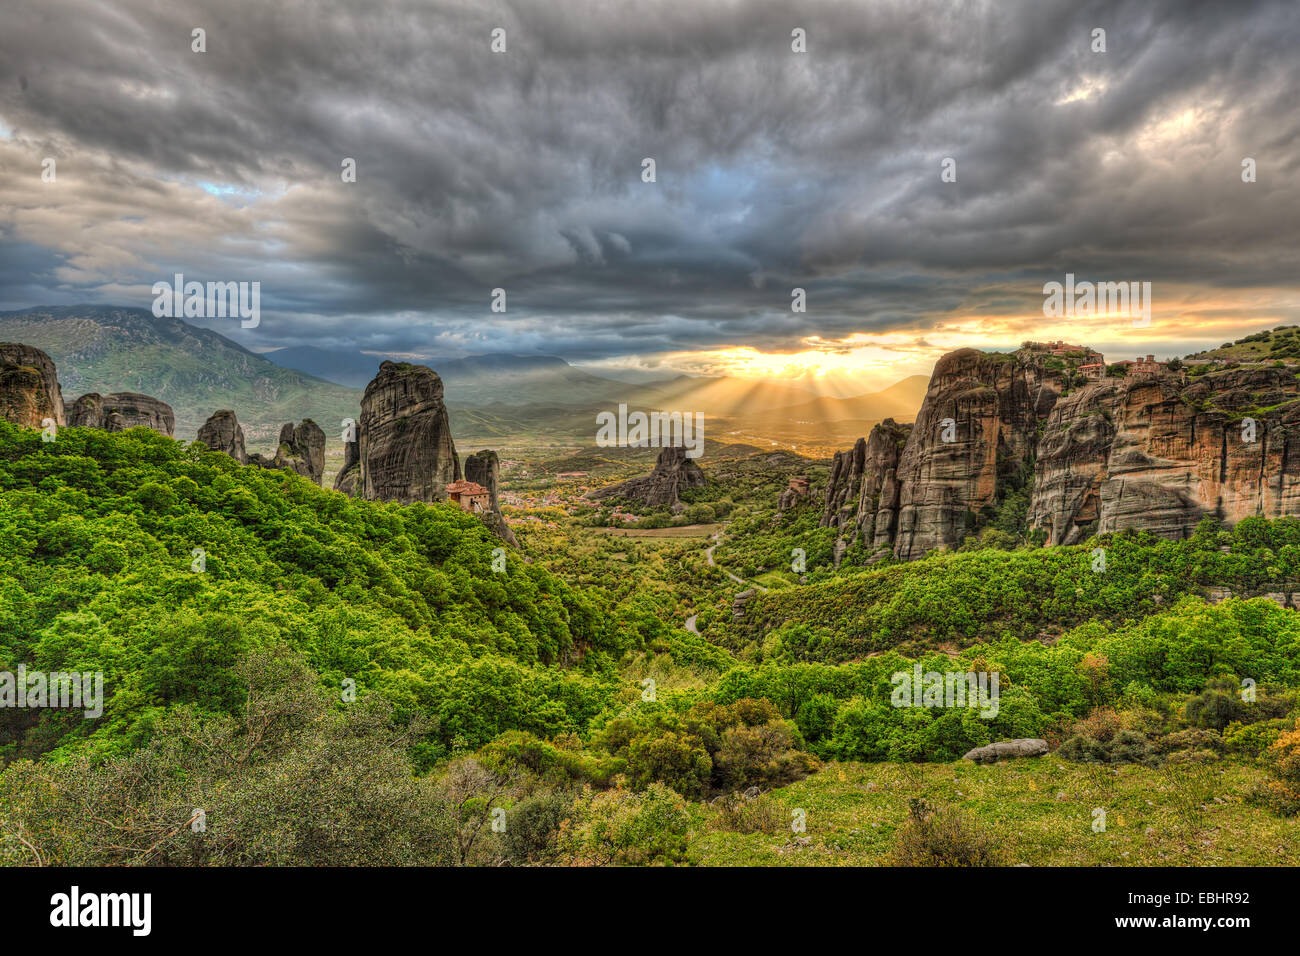 Monasteries on the top of Giant rocks seem miraculous and make Meteora one of the most spectacular places in Greece. - Stock Image